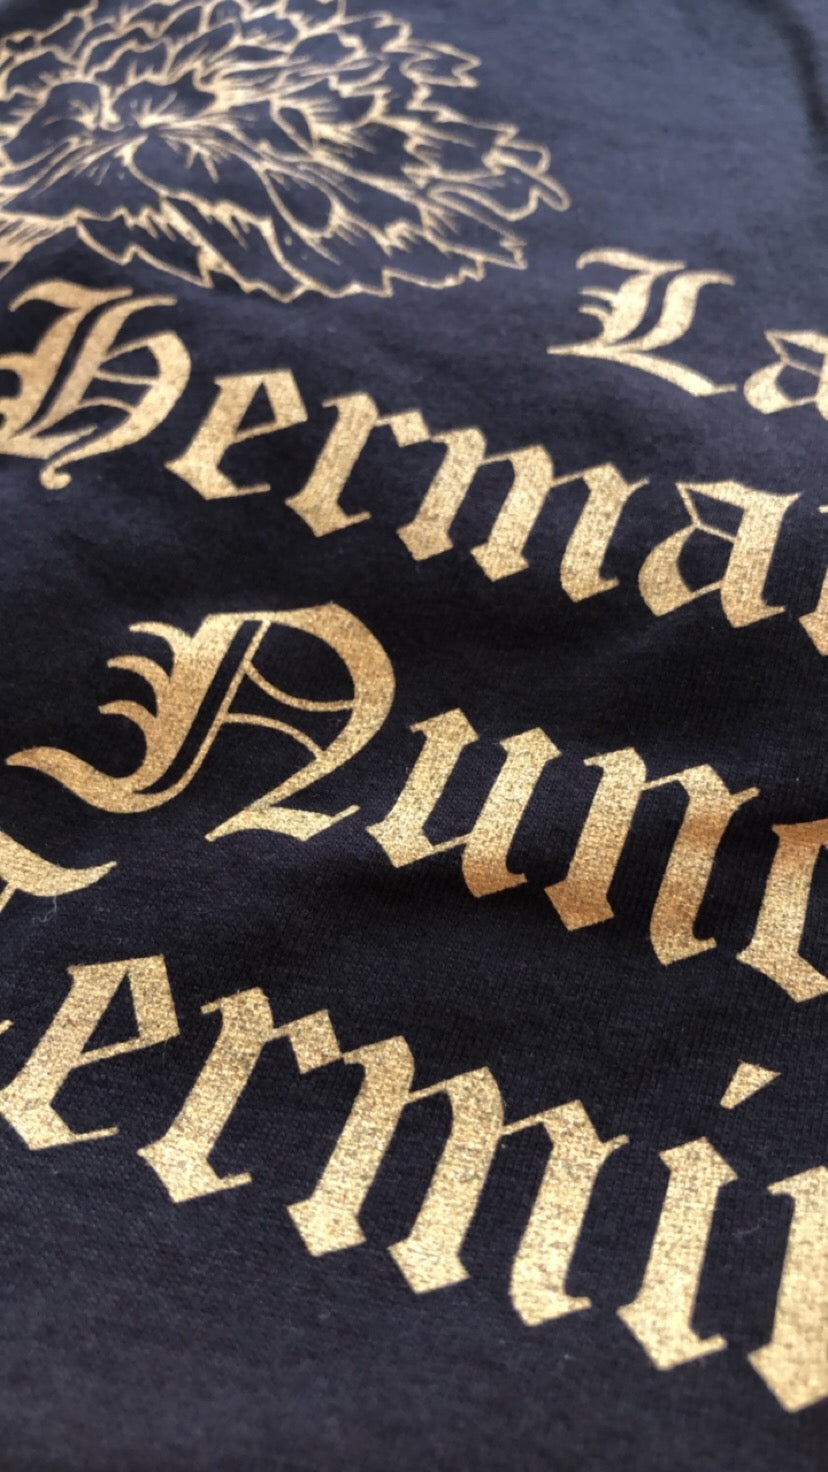 La Hermandad Tee Limited Edition Metallic Gold